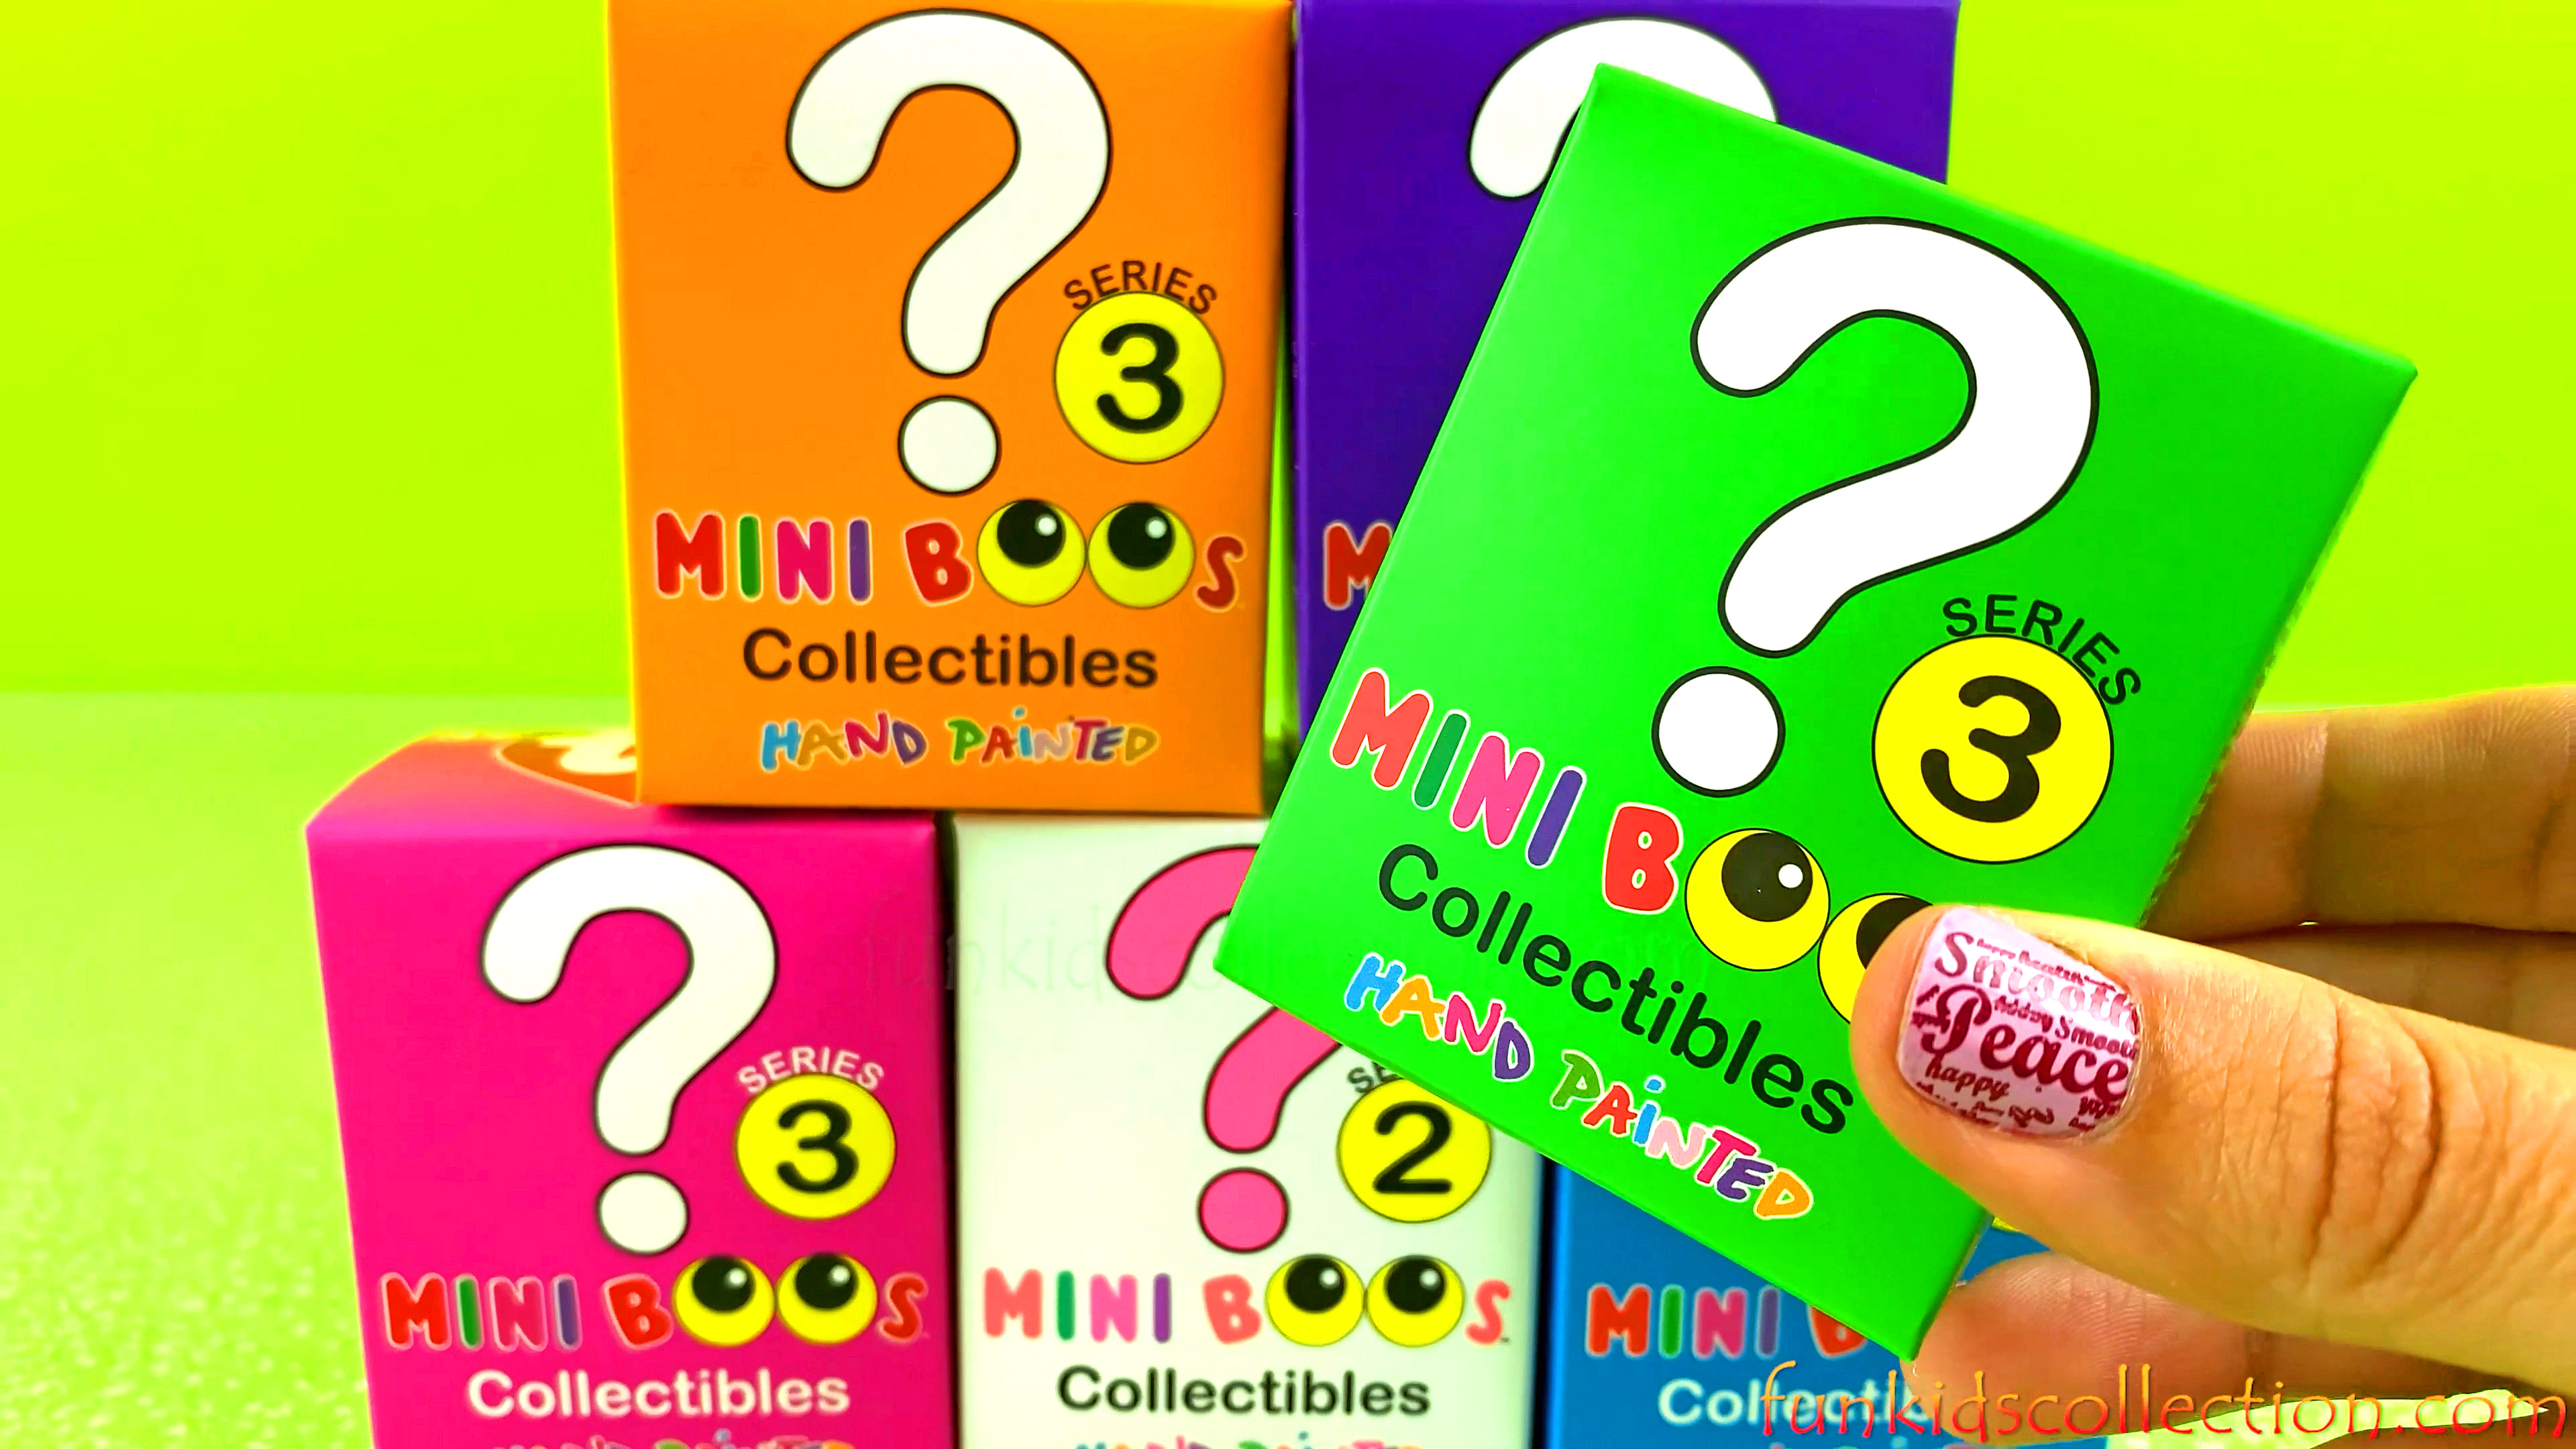 Mini Boos Blind Box | Unboxing Mini Boos Collectibles Hand Painted Series 3